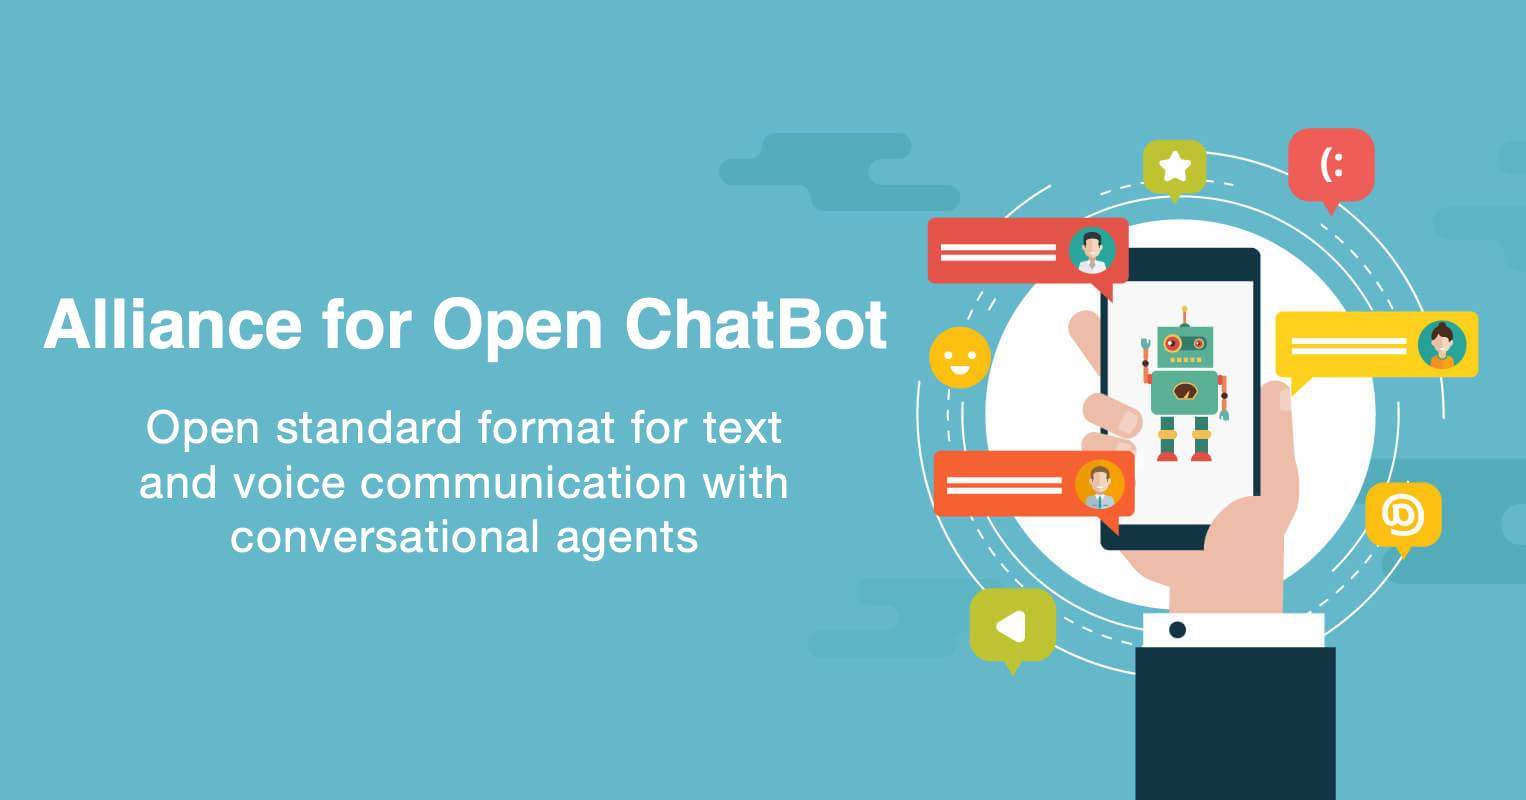 Alliance for Open ChatBot header